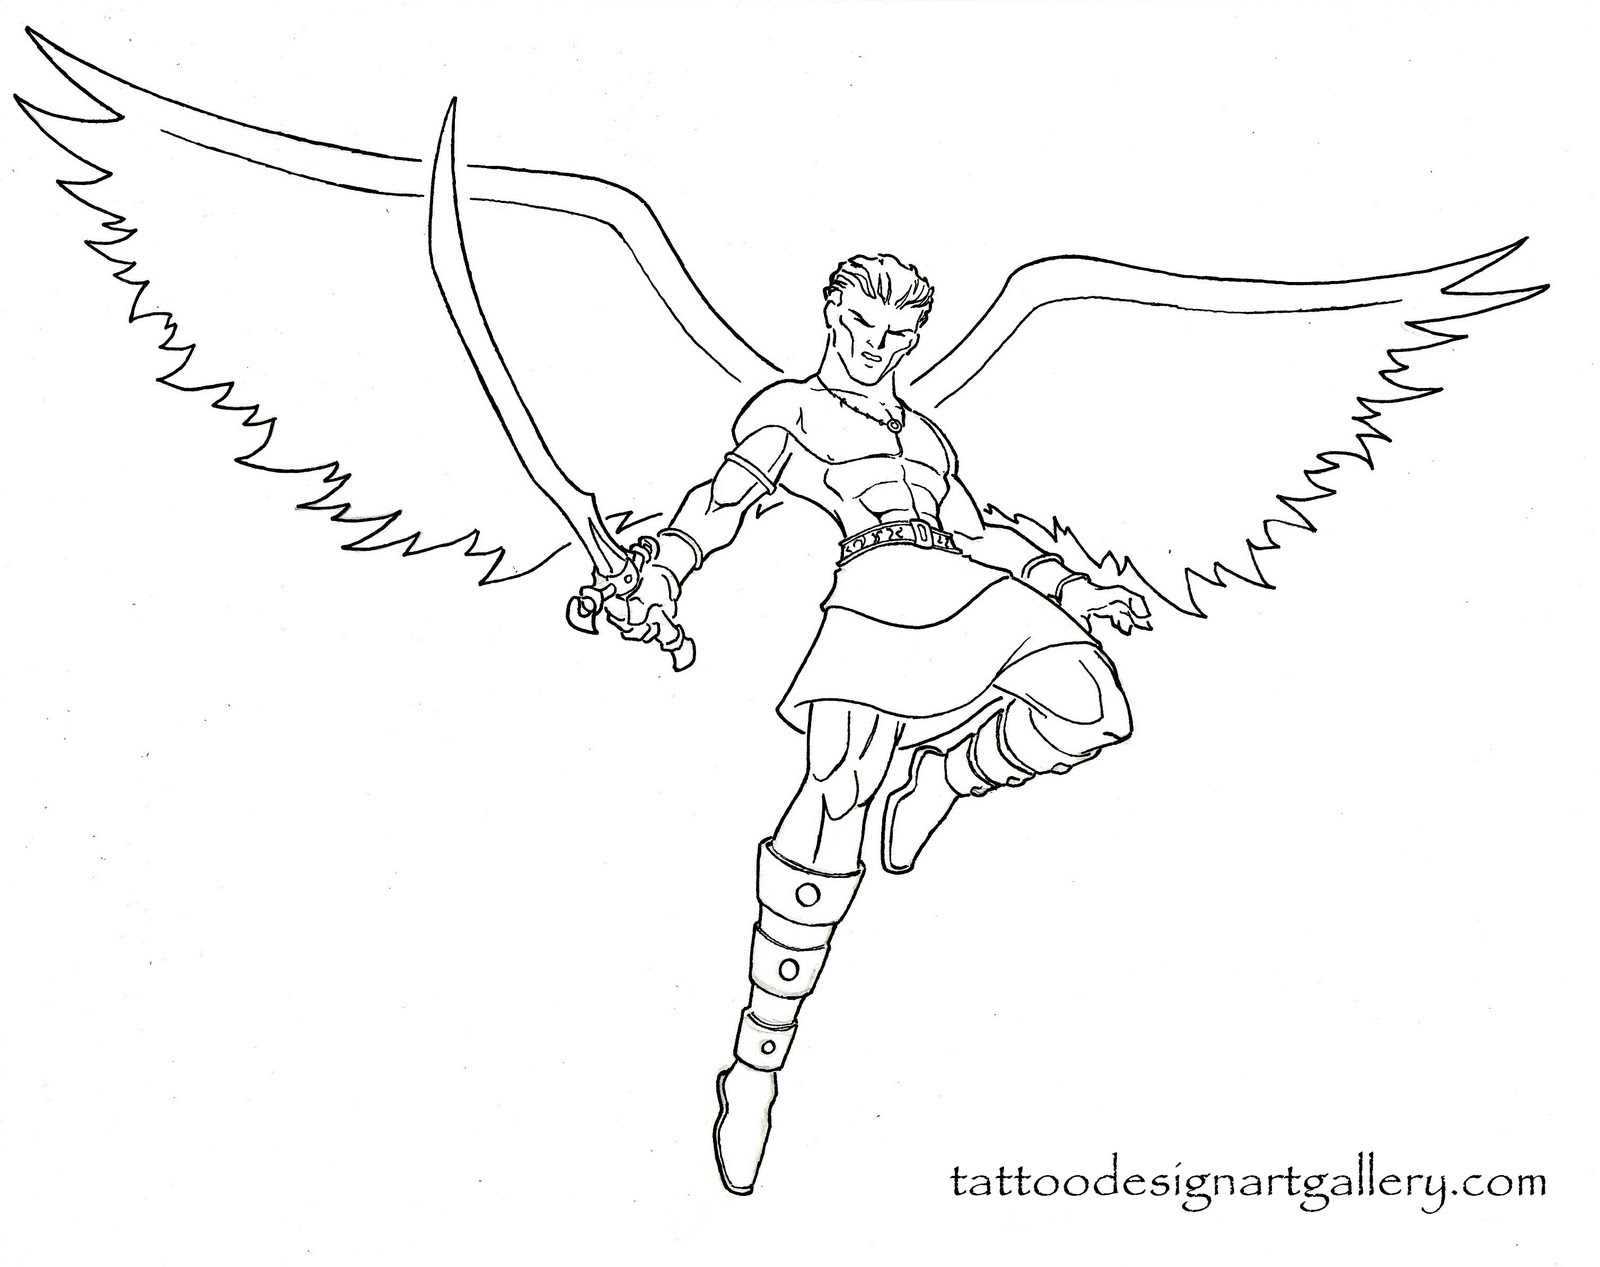 1600x1267 Angel Warrior Tattoo Design Sword Amp Sorcery Drawing Angel